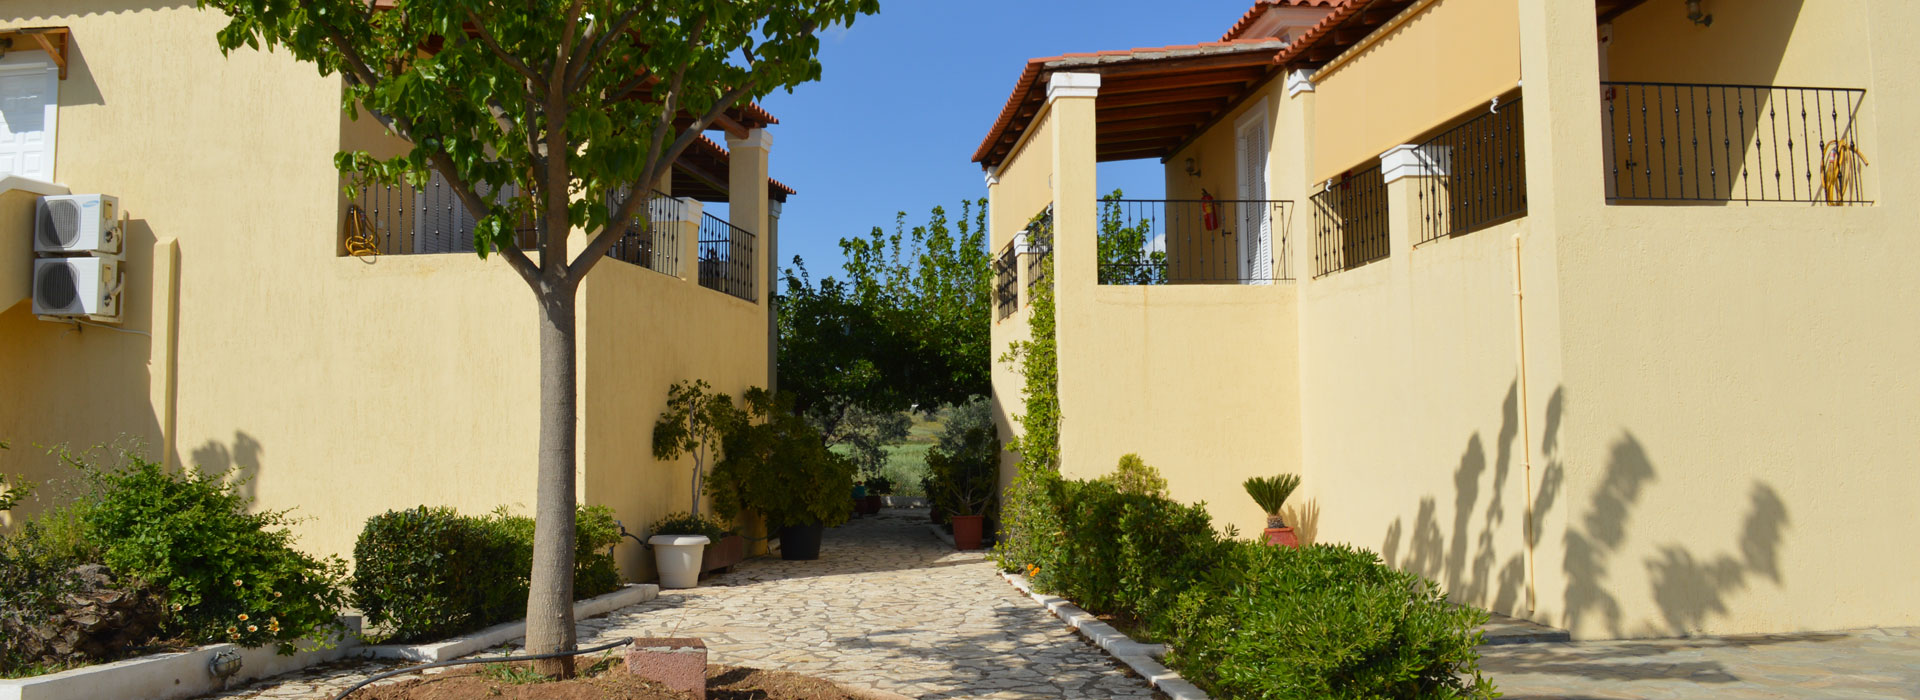 Petrothalassa Accommodation at Bekas Studios & Apartments Argolida